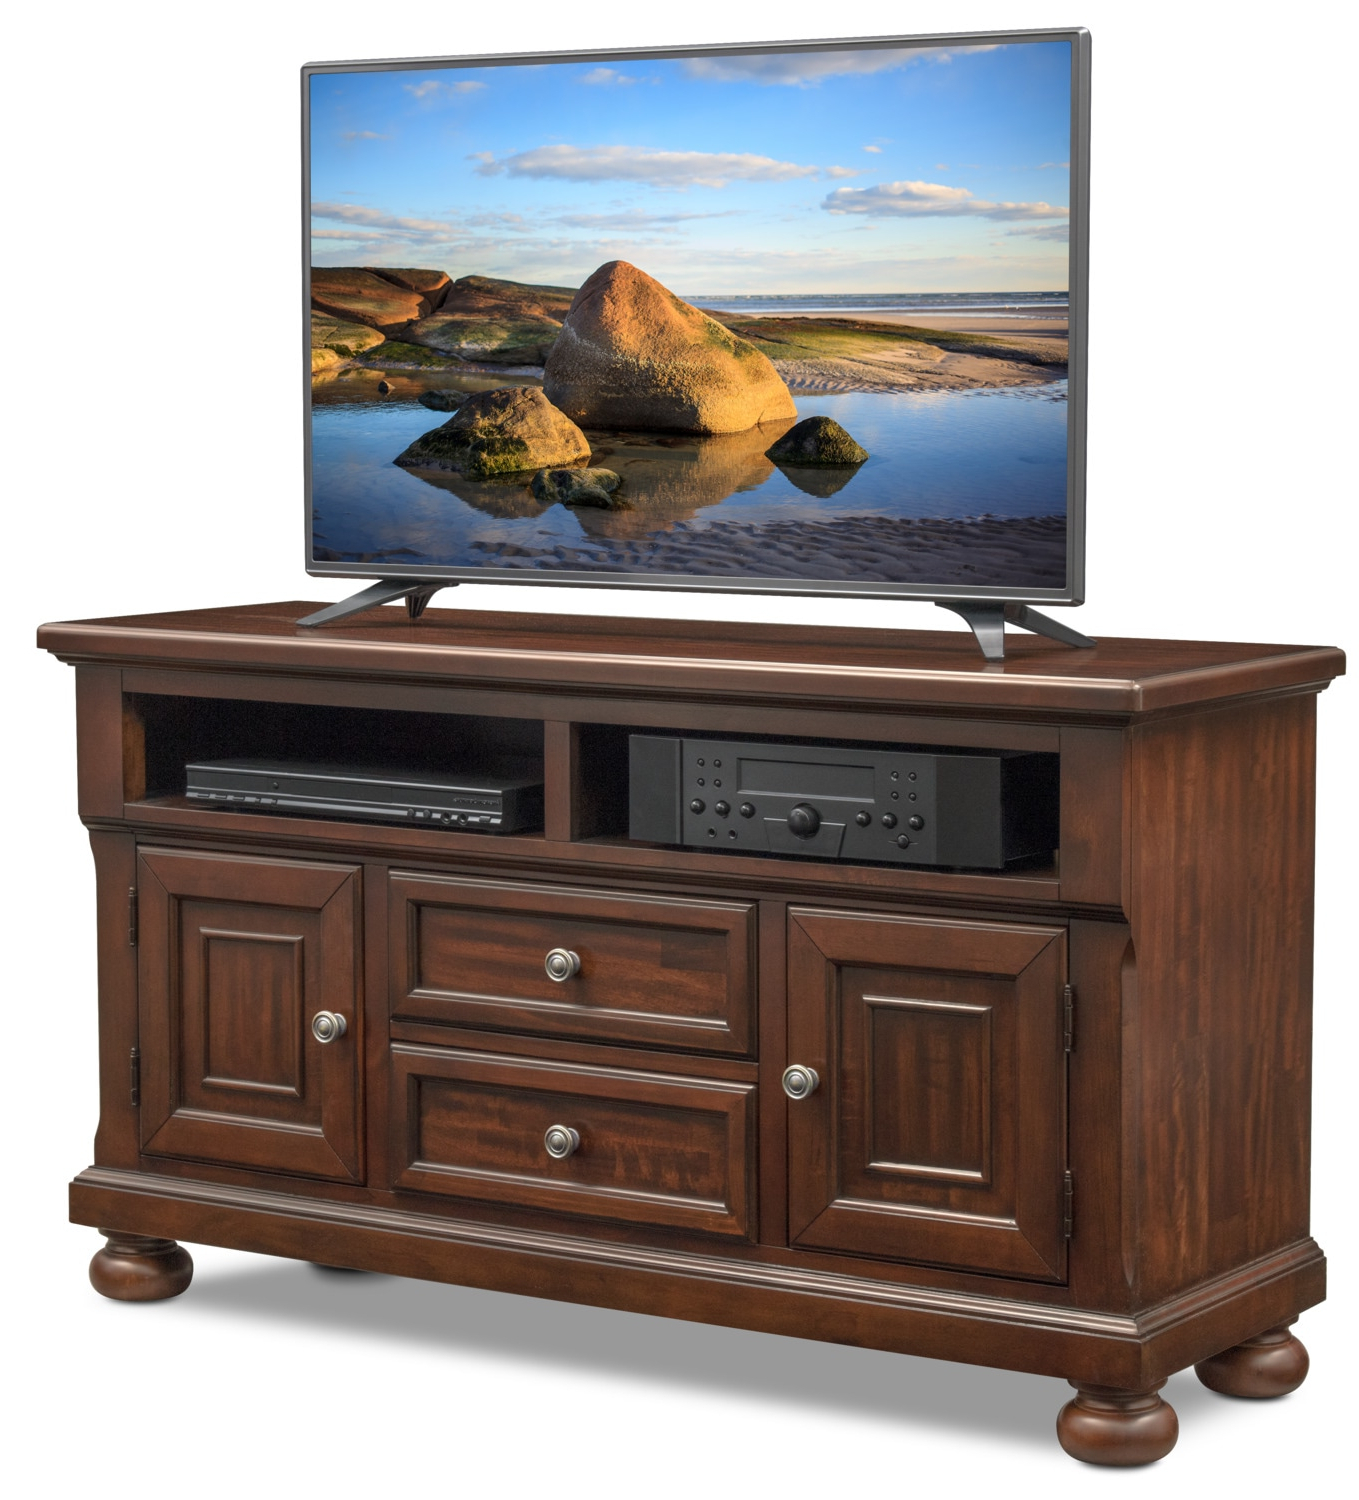 "Cherry Wood Tv Stands Regarding Famous Hanover 52"" Tv Stand – Cherry (Gallery 19 of 20)"